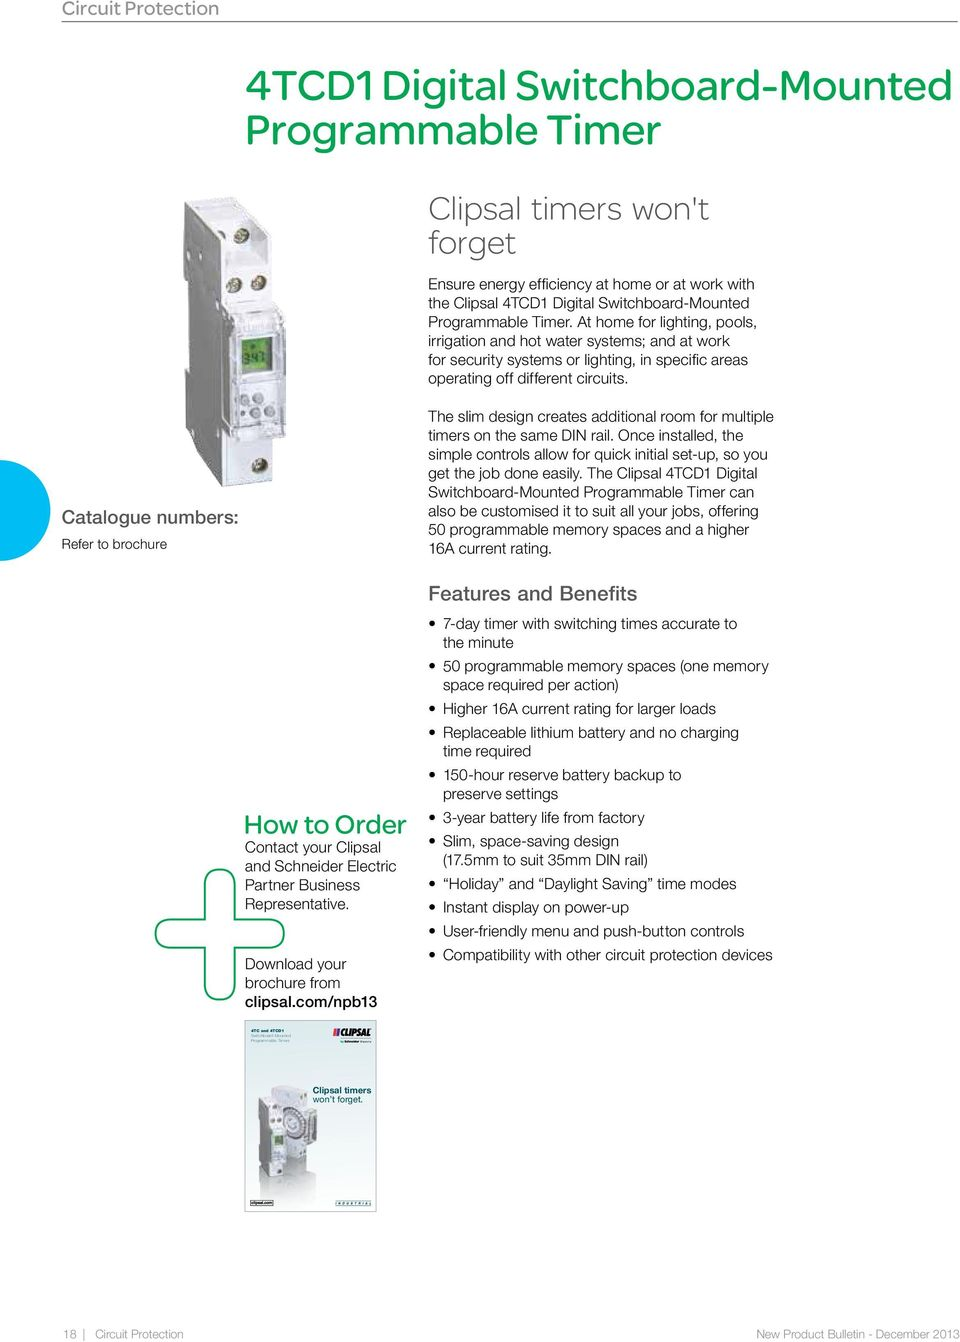 Refer To Brochure The Slim Design Creates Additional Room For Multiple  Timers On The Same Din